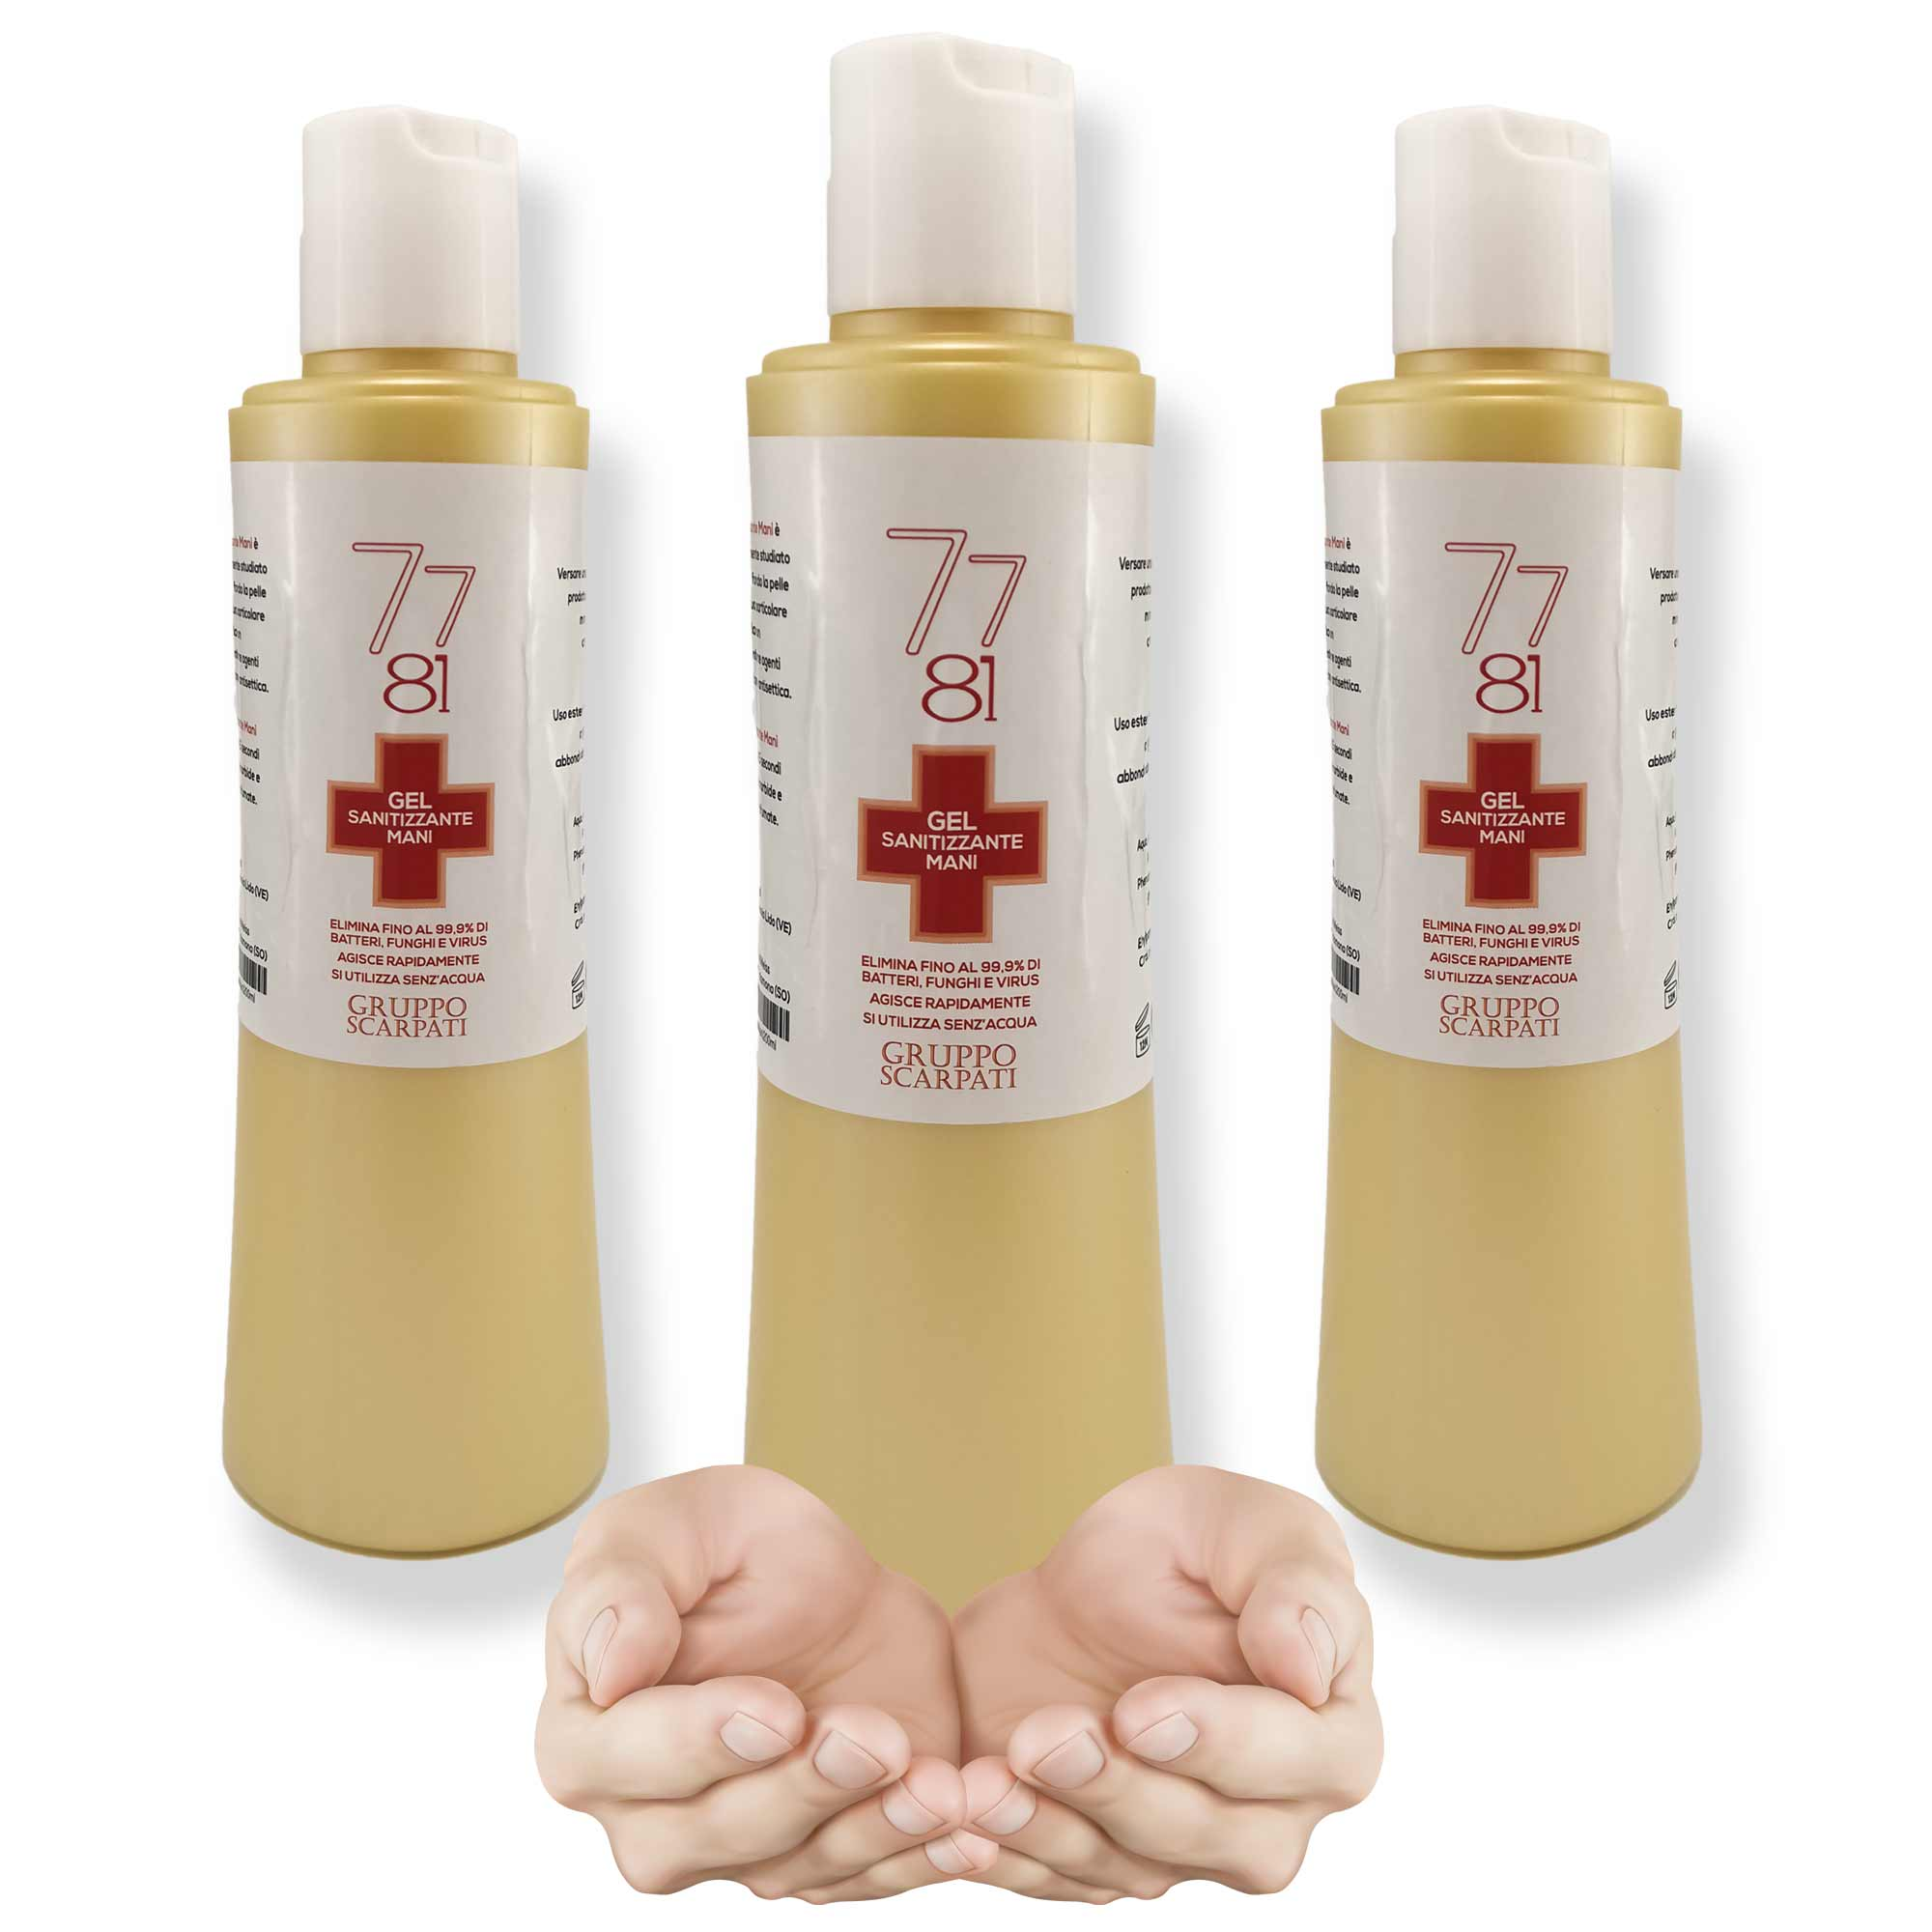 3x SANITIZING GEL HANDS 7781 SCARPATI ANTIBACTERIAL DISINFECTANT BACTERIA MUSHROOMS VIRUS 200ML